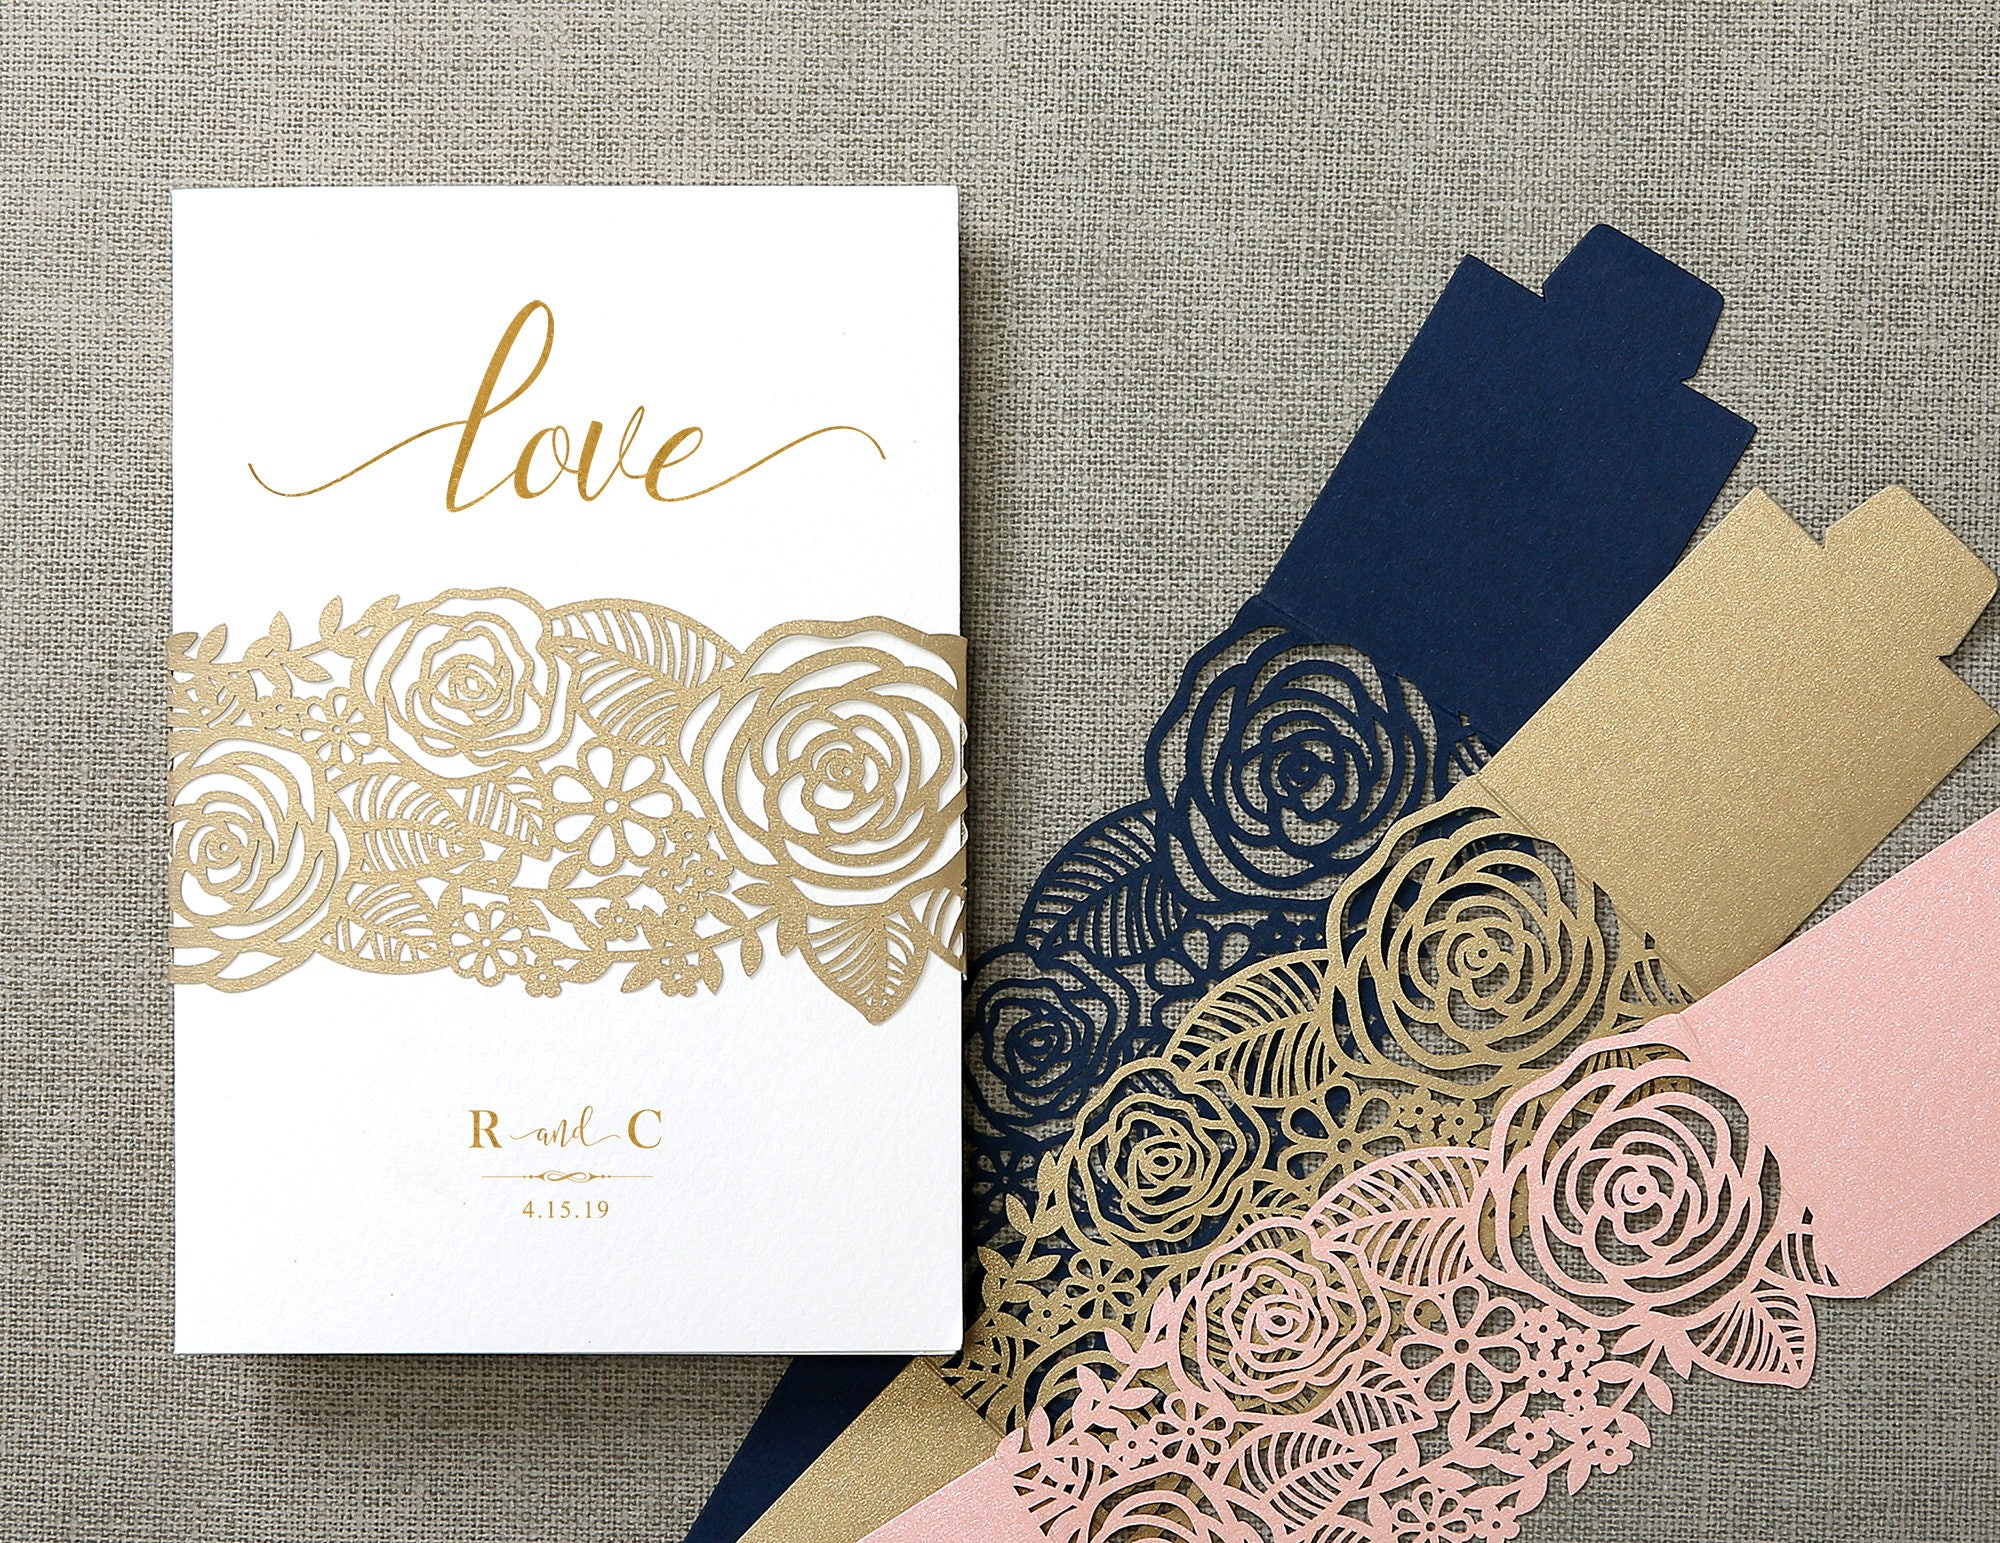 Elegant rose flowers laser cut belly band wedding invitations cards ...